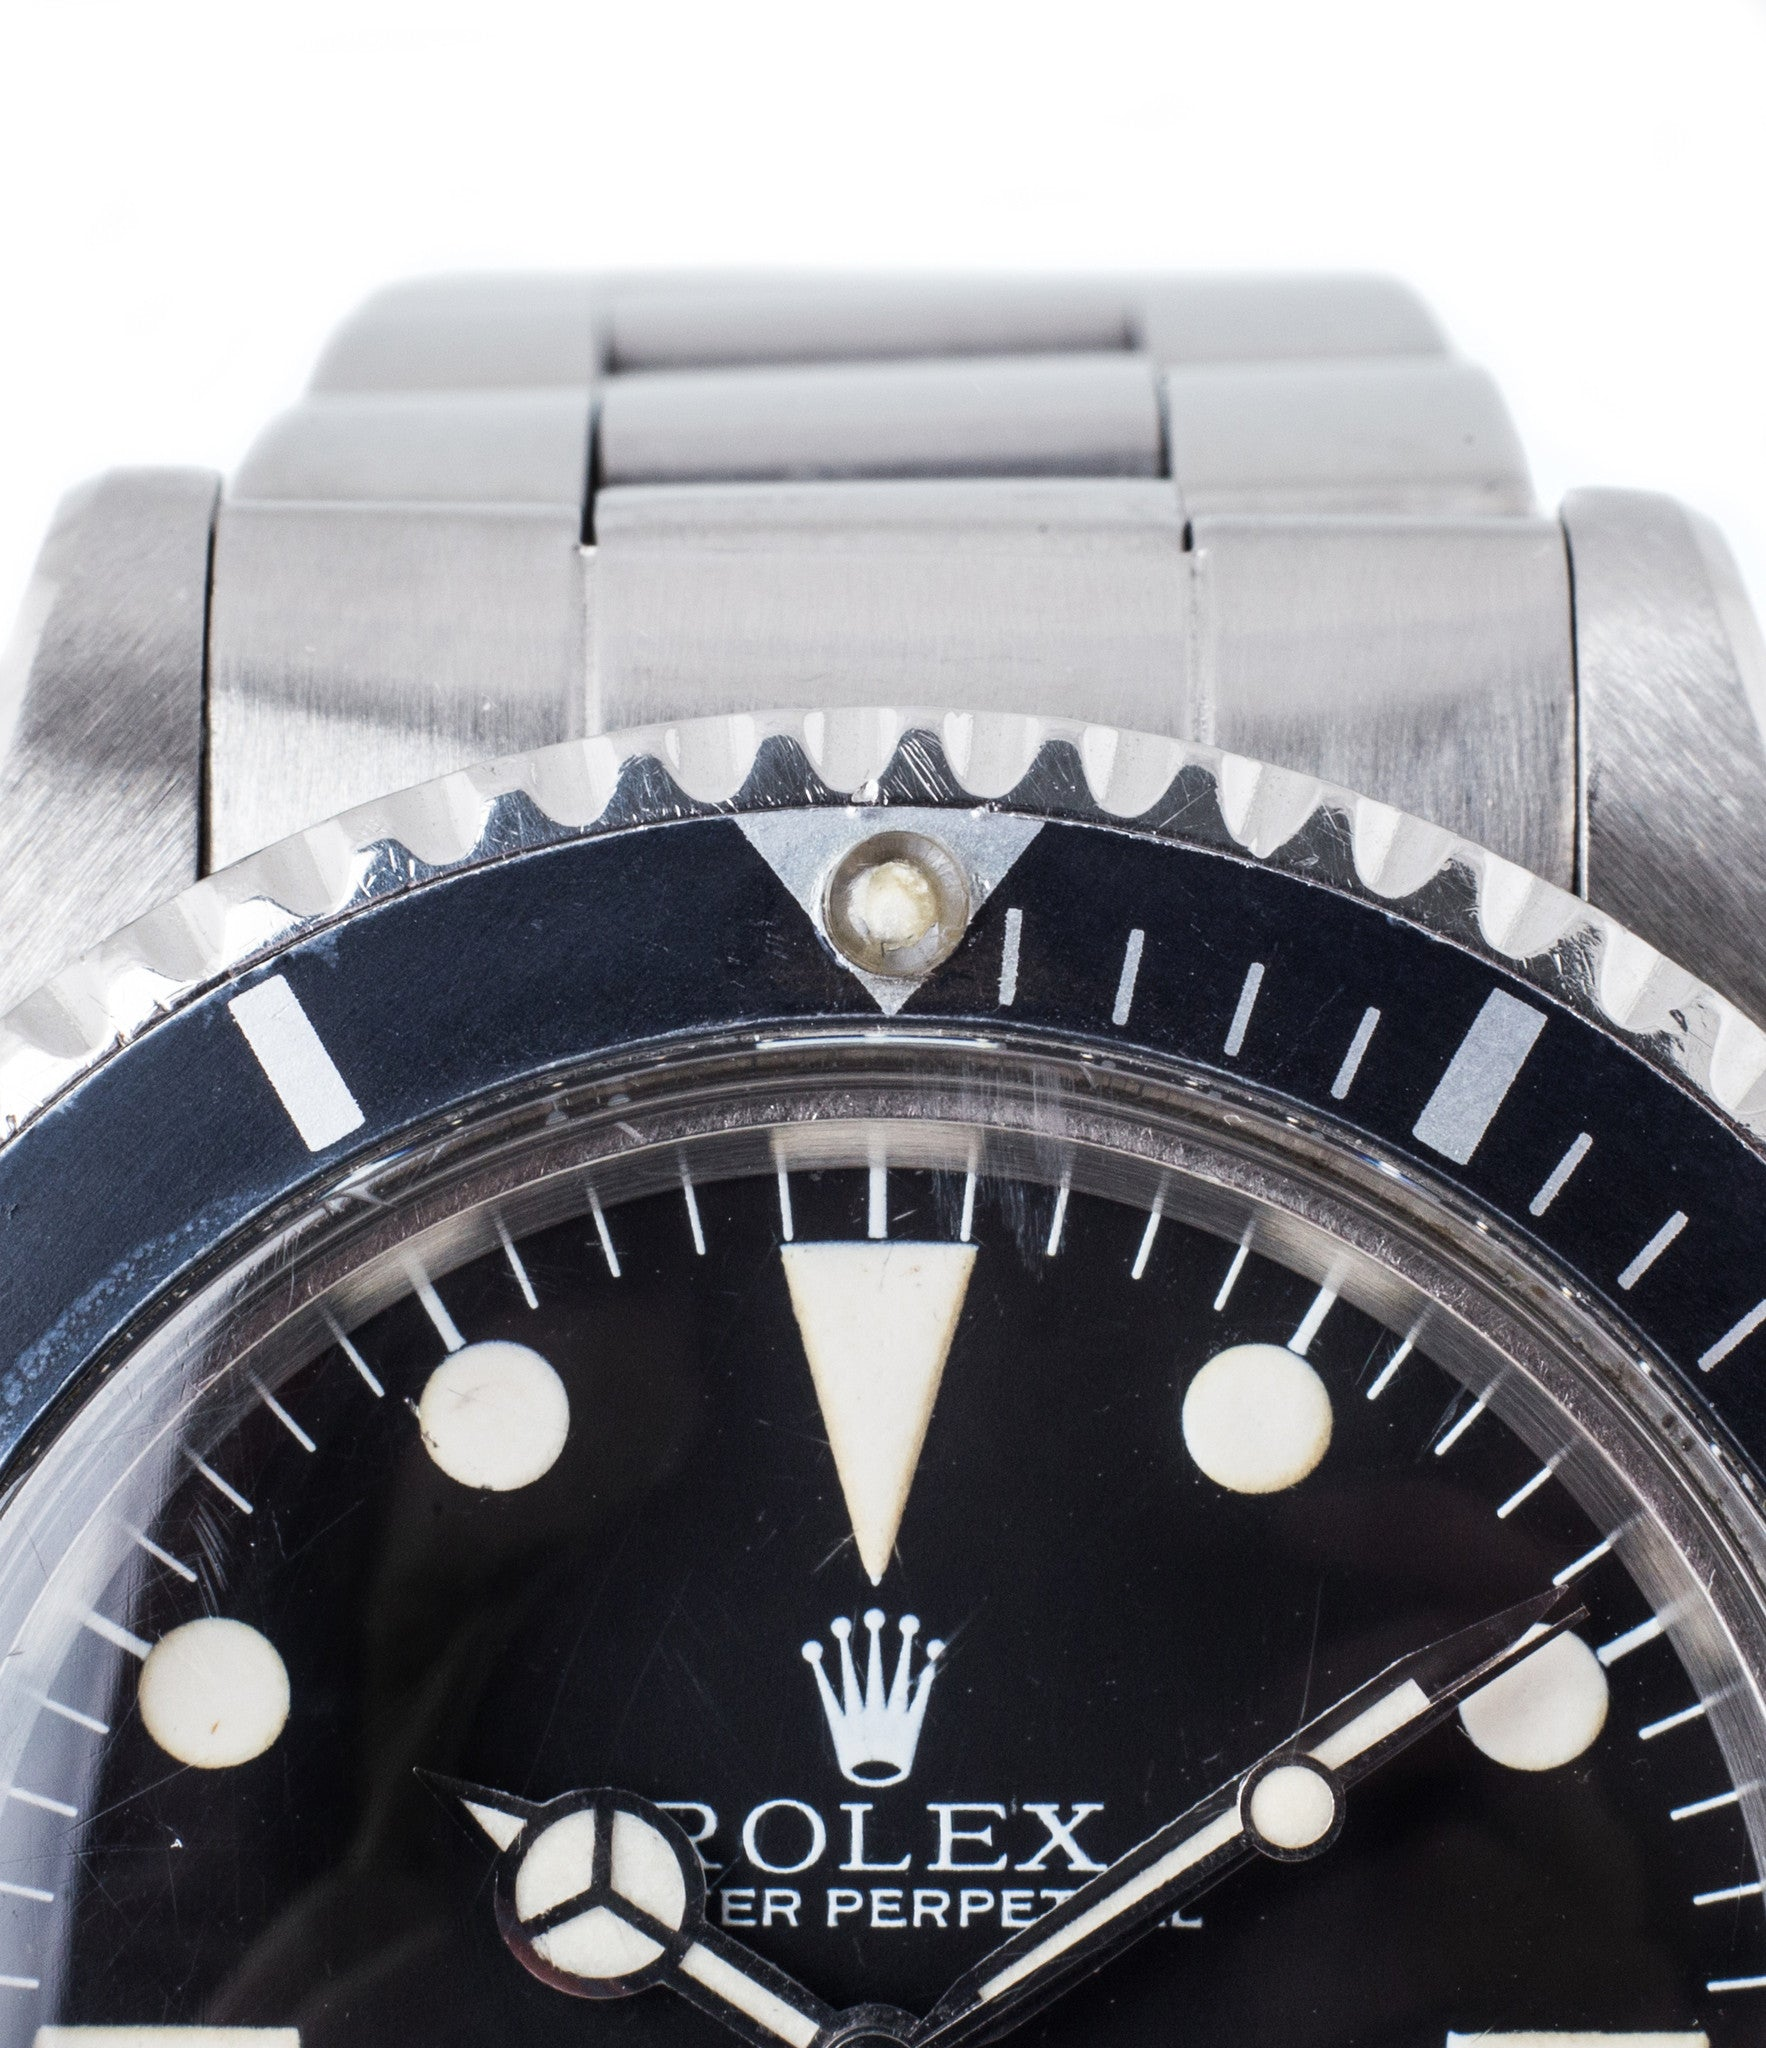 buy Rolex Submariner 5513/0 Maxi Mark III dial steel vintage dateless watch with box and papers for sale online WATCH XCHANGE London with authenticity guaranteed